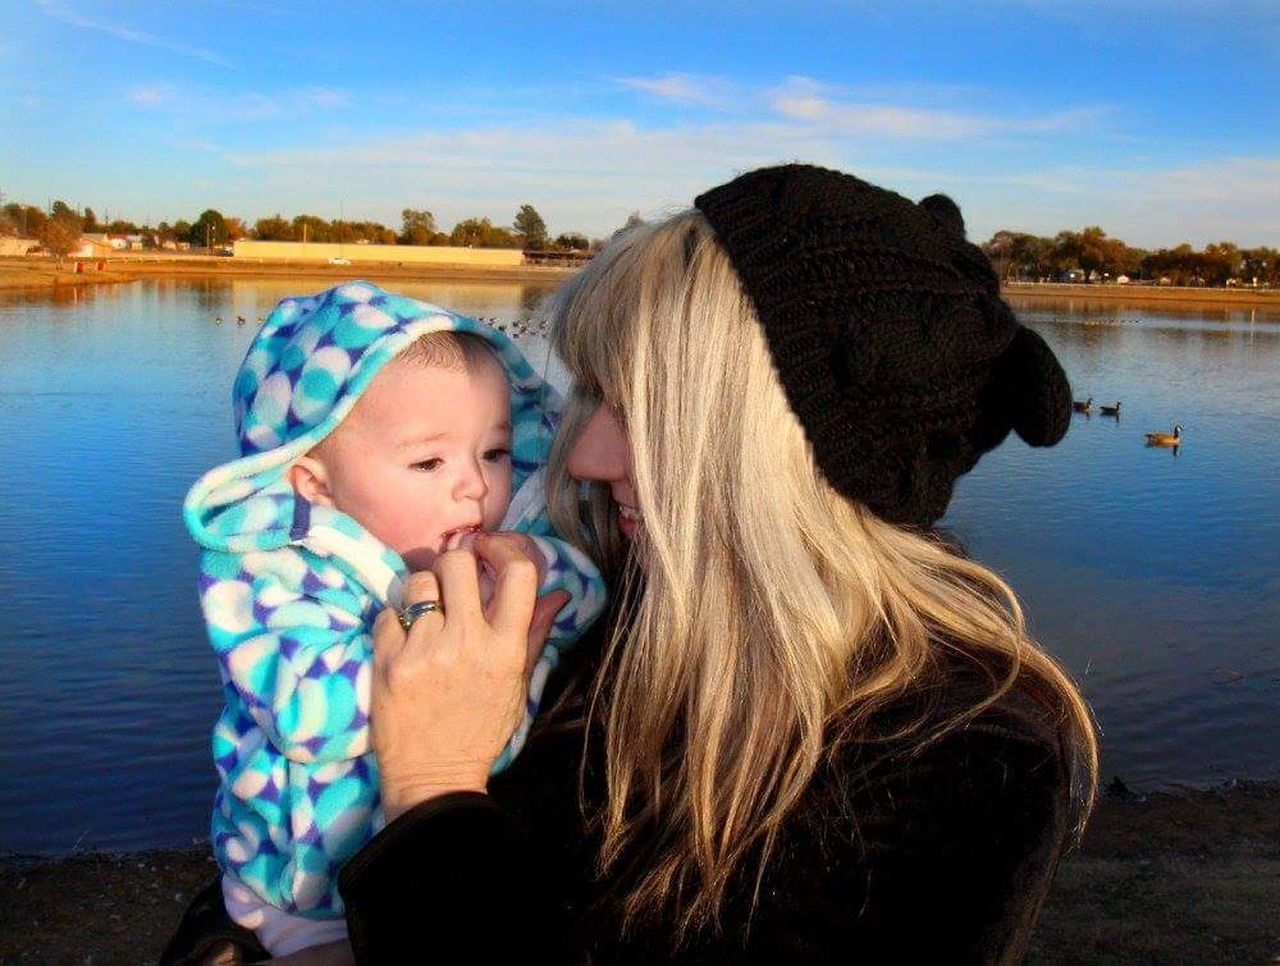 Togetherness Two People Family People Happiness Water Lake Outdoors Winter Mature Adult Adult Baby Bonding Nature Females Warm Clothing Day Sky Self Potrait Grandmother&granddaughter Sunset Lakeshore Lake View